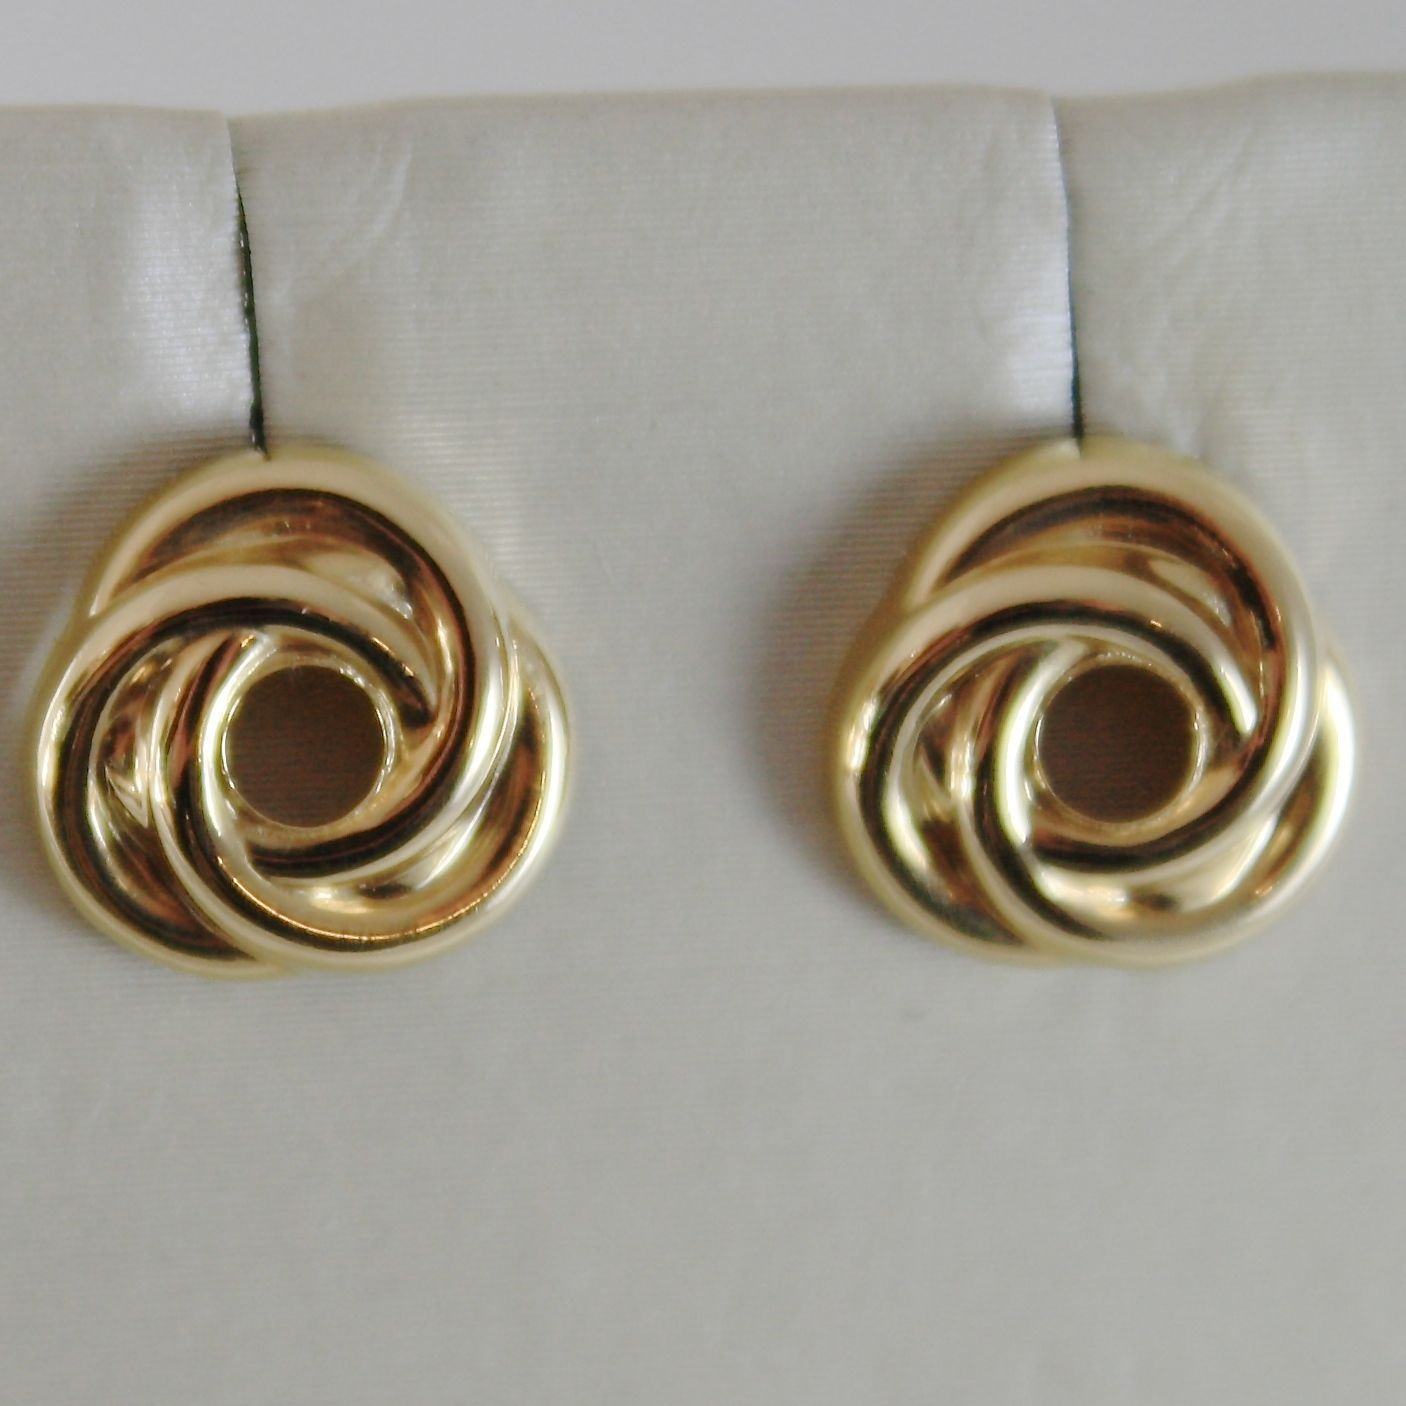 18K YELLOW GOLD BOTTON EARRINGS WITH 3 CROSSED CIRCLES, CIRCLE, MADE IN ITALY